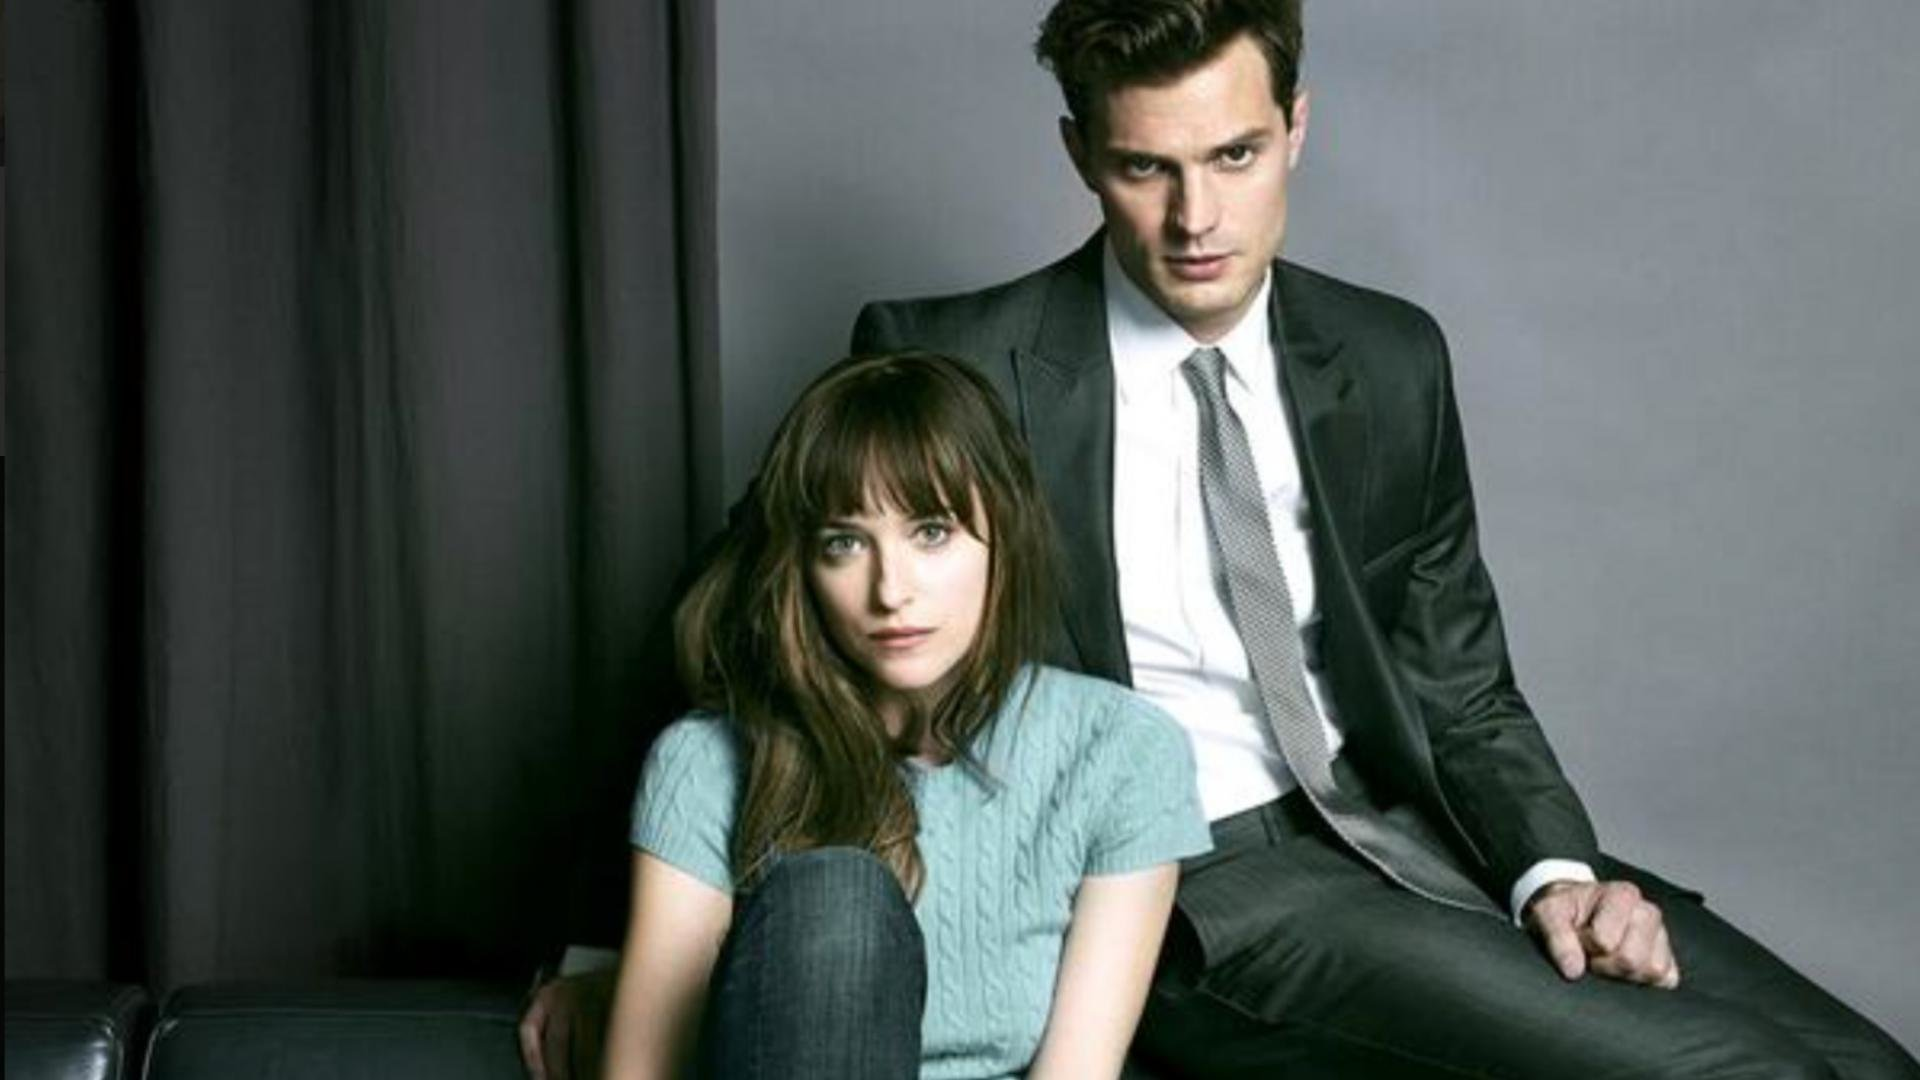 Free Download Fifty Shades Of Grey Wallpaper Id 57568 Hd 1920x1080